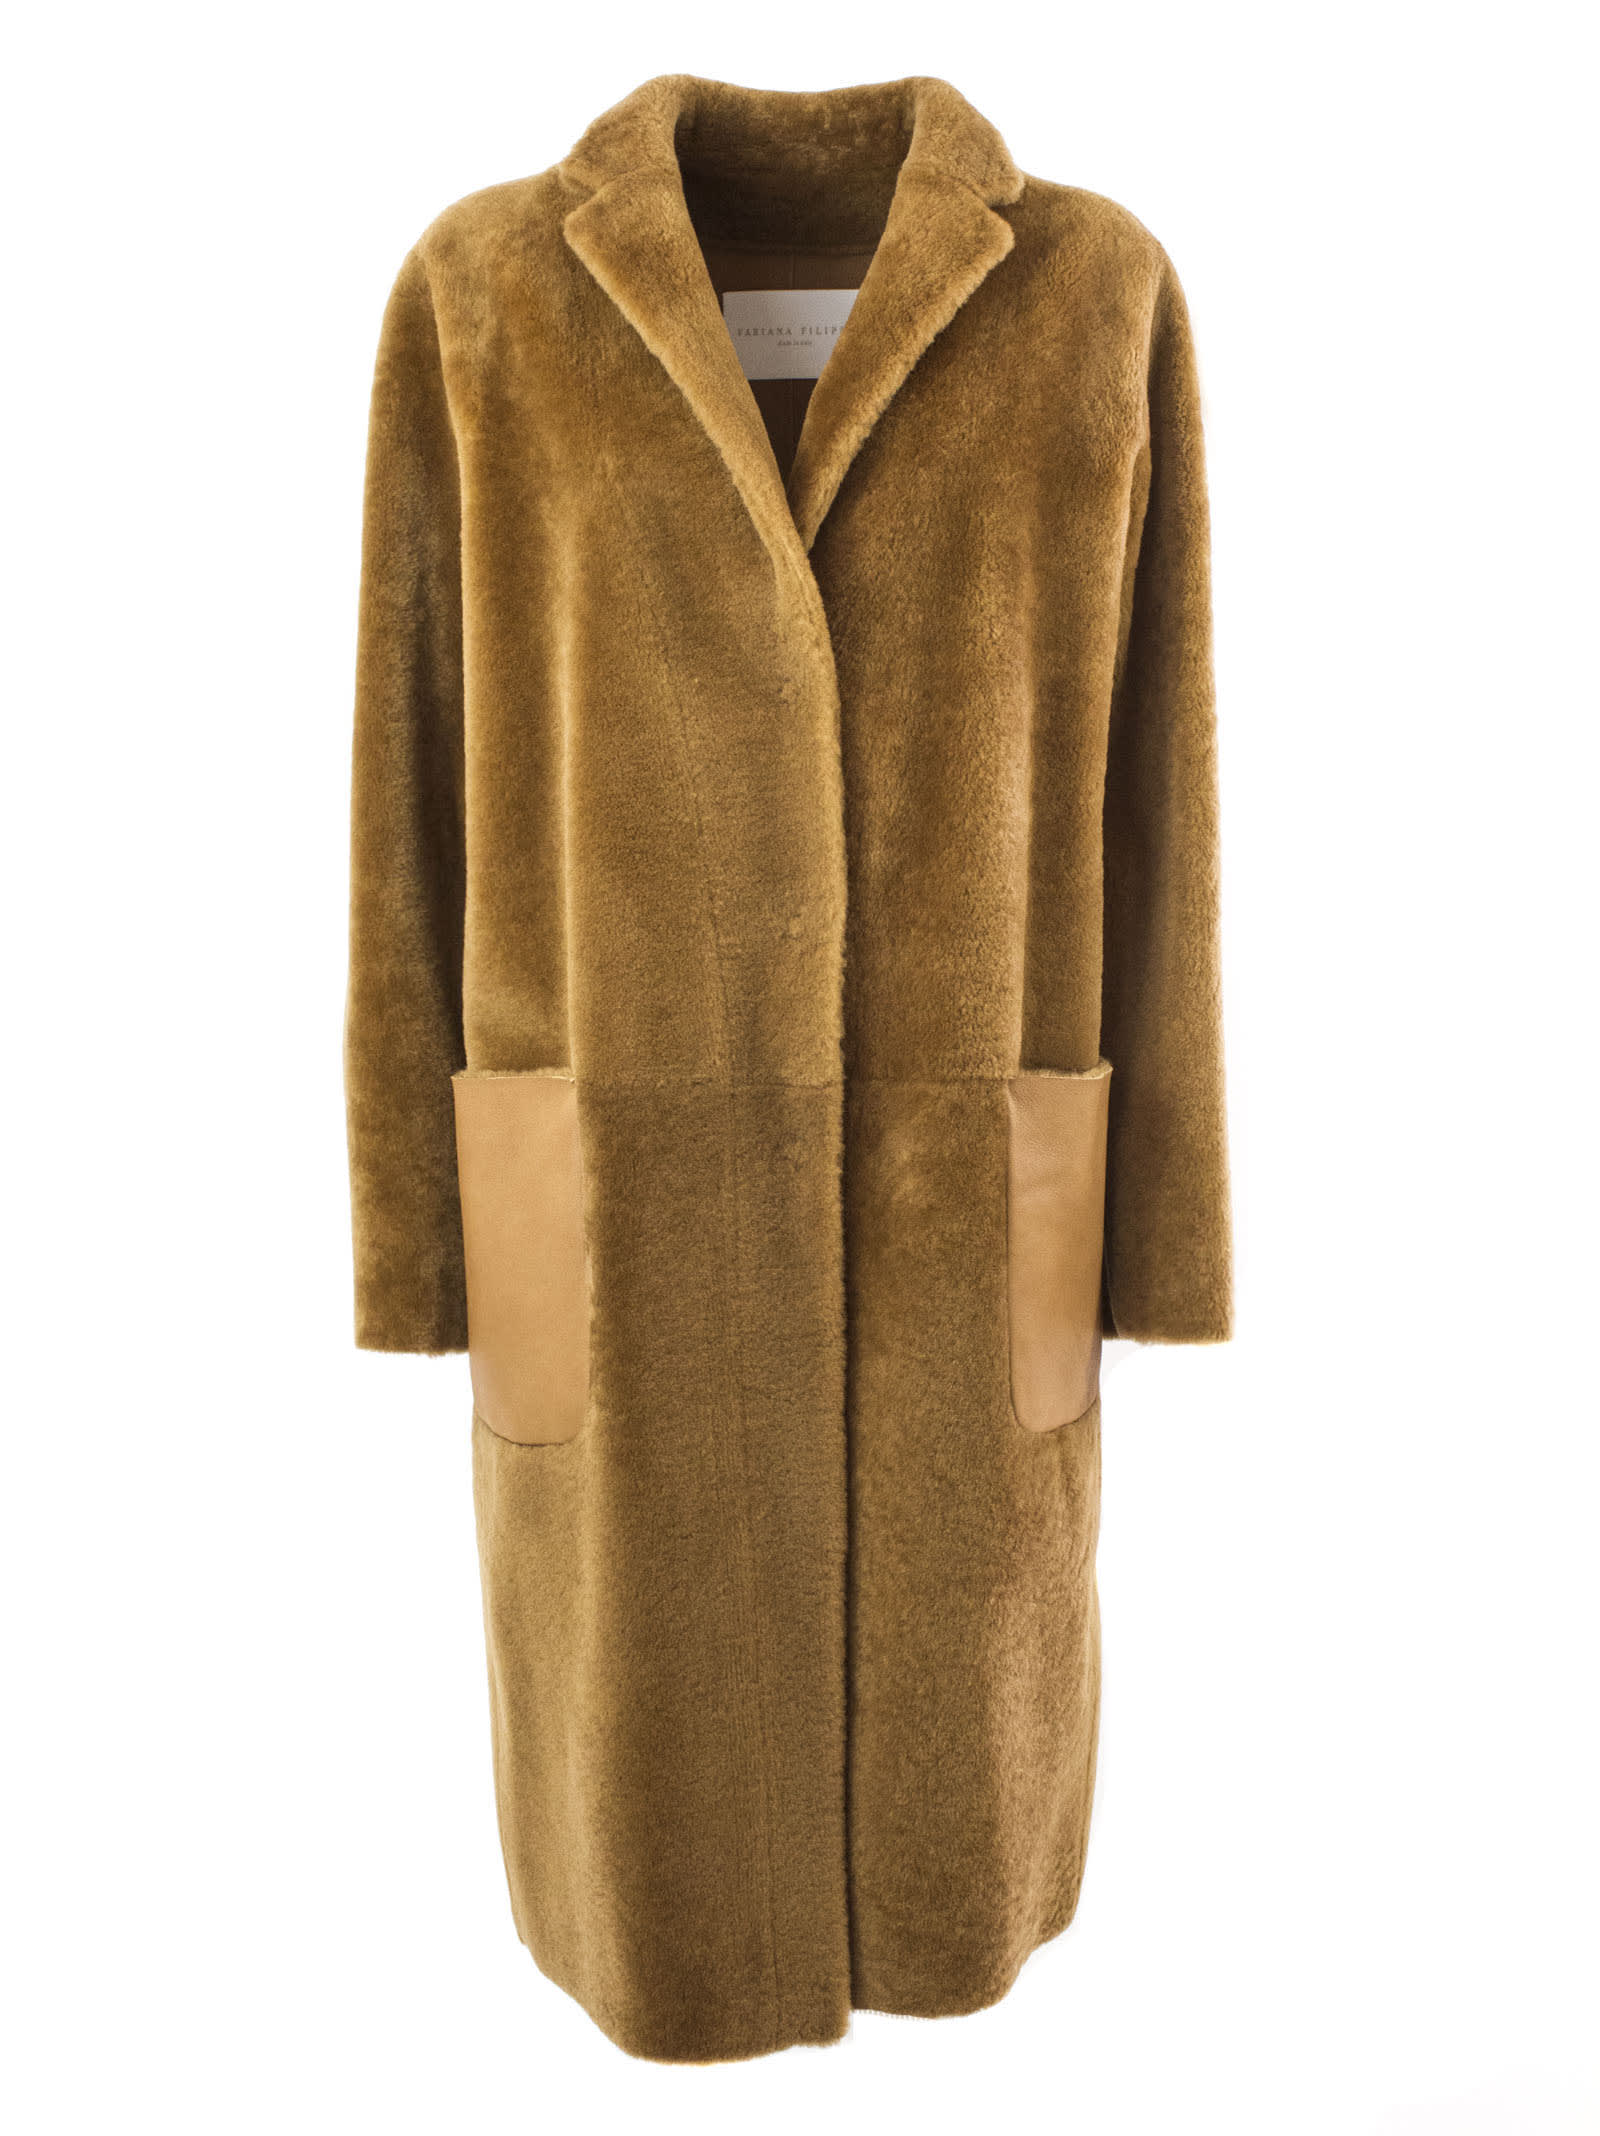 Fabiana Filippi Brown Merino Sherling Overcoat